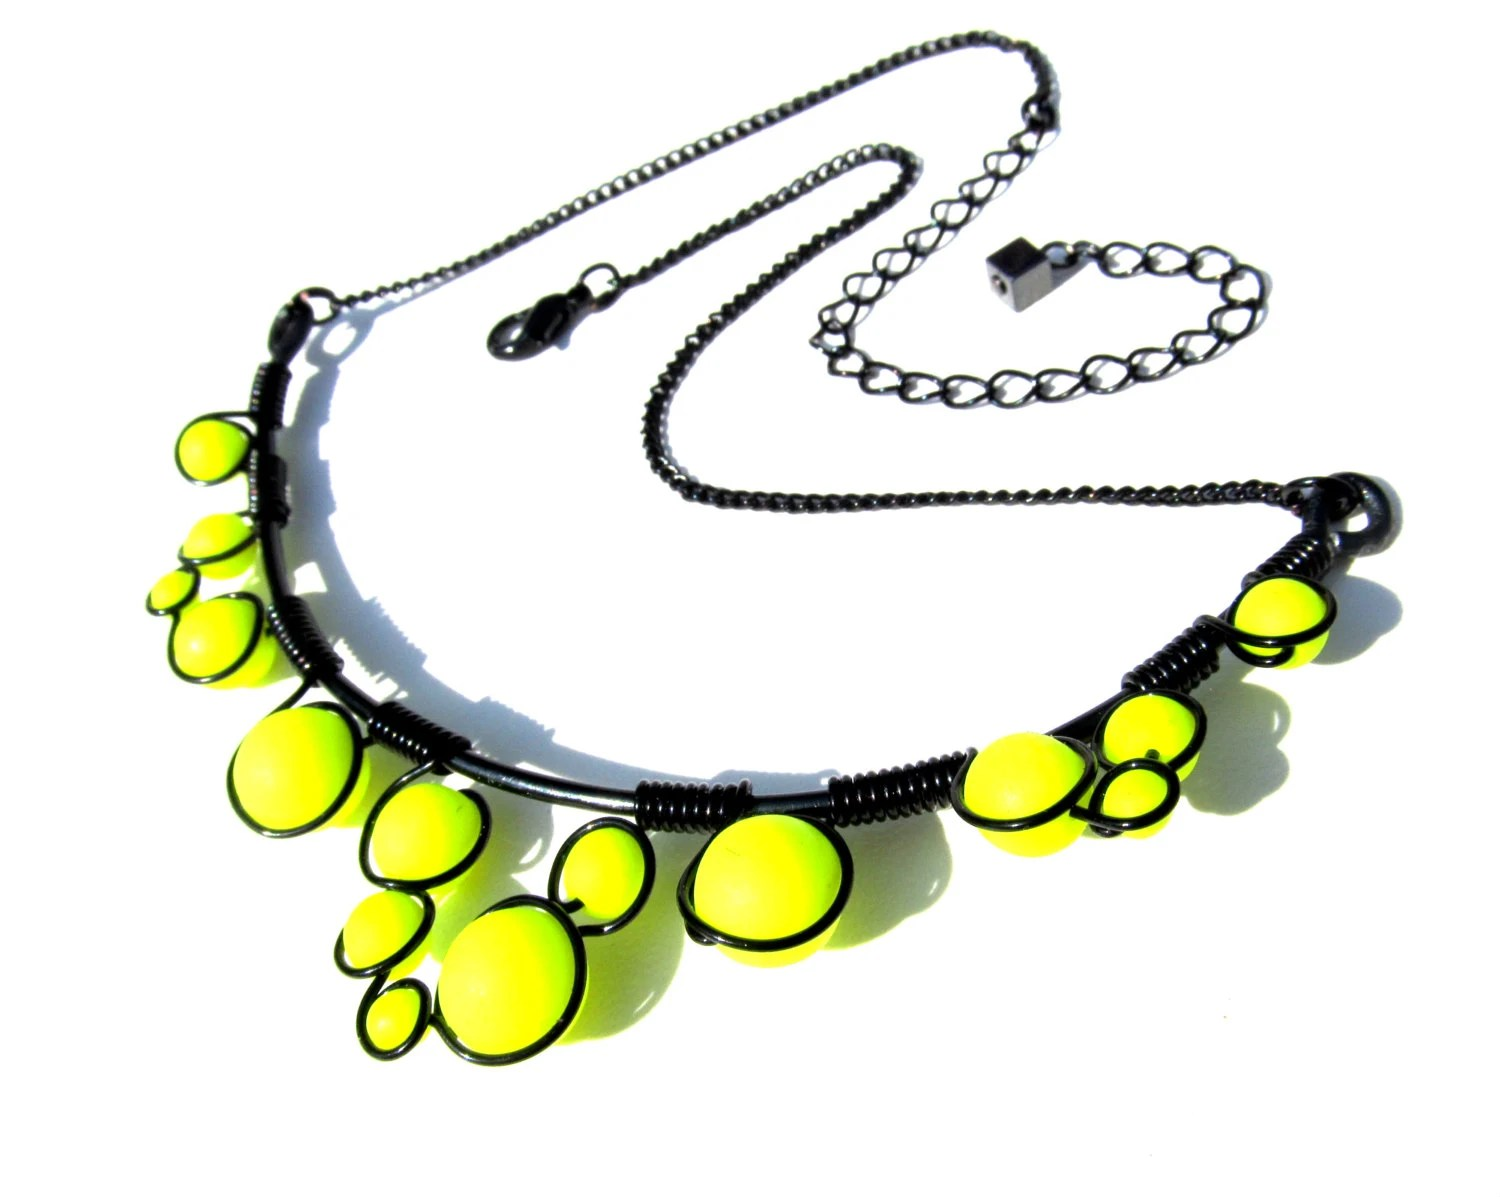 Neon Yellow  and Black Wire Wrapped Necklace - Neon Yellow Czech Glass Beads wrapped in black wire with adjustable chain - CarrieEastwood